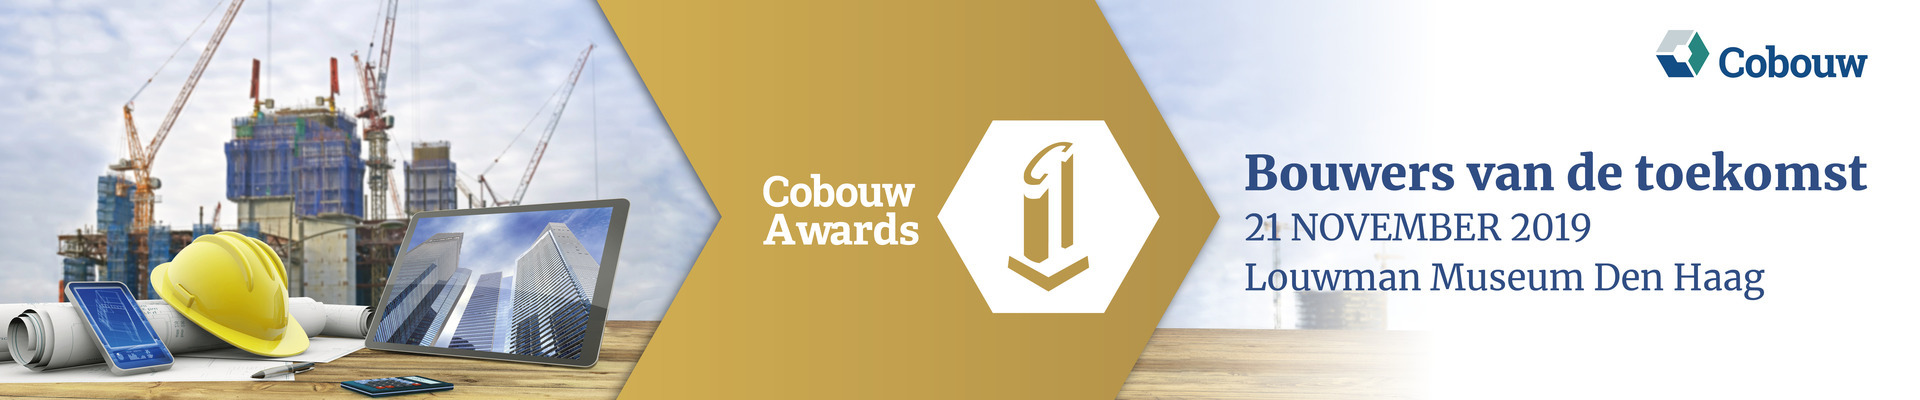 Cobouw Awards 2019